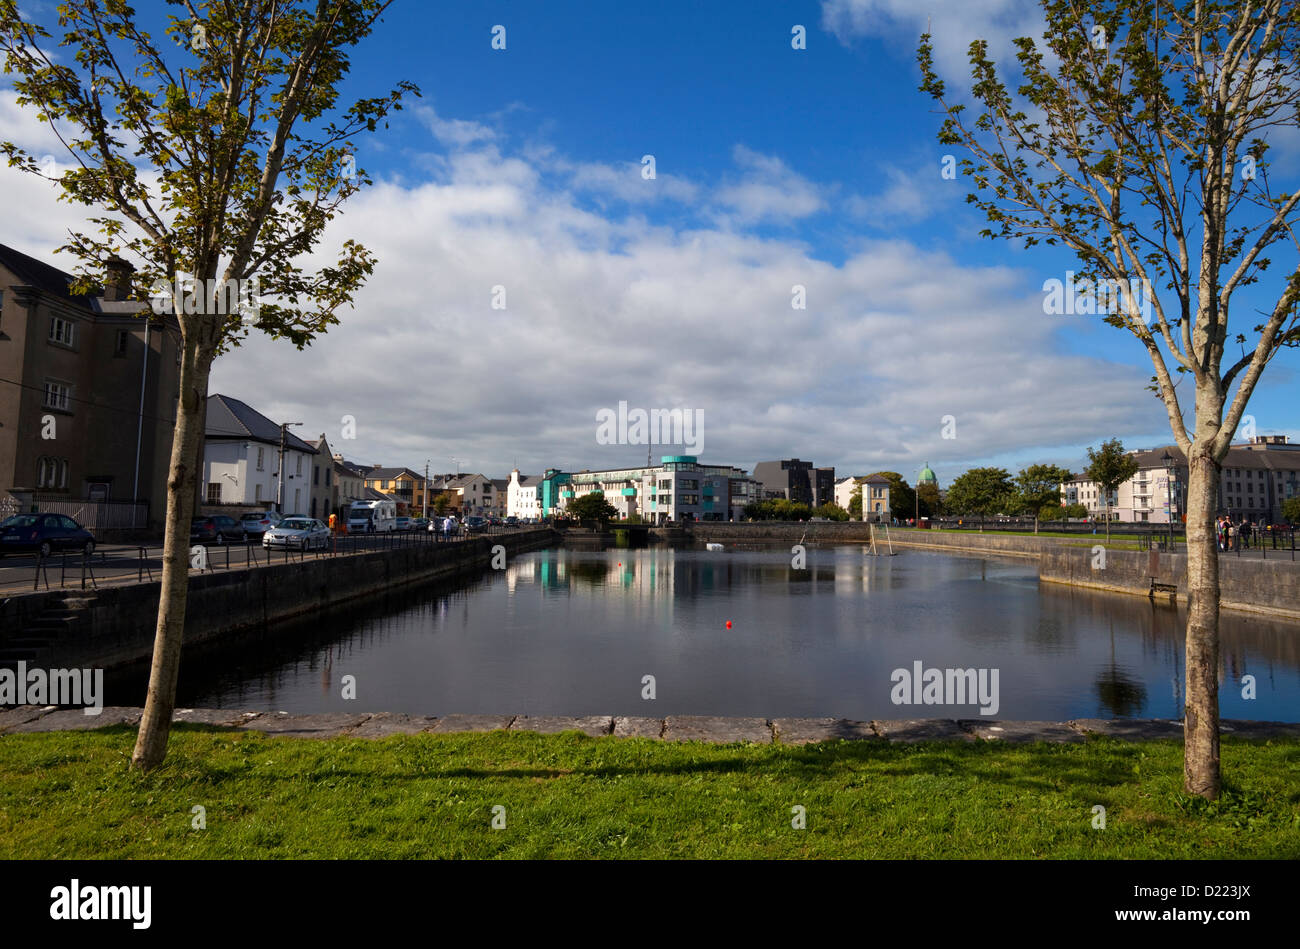 Enclosed Dock off the Corrib River near Claddagh Quay, Galway City, Ireland - Stock Image